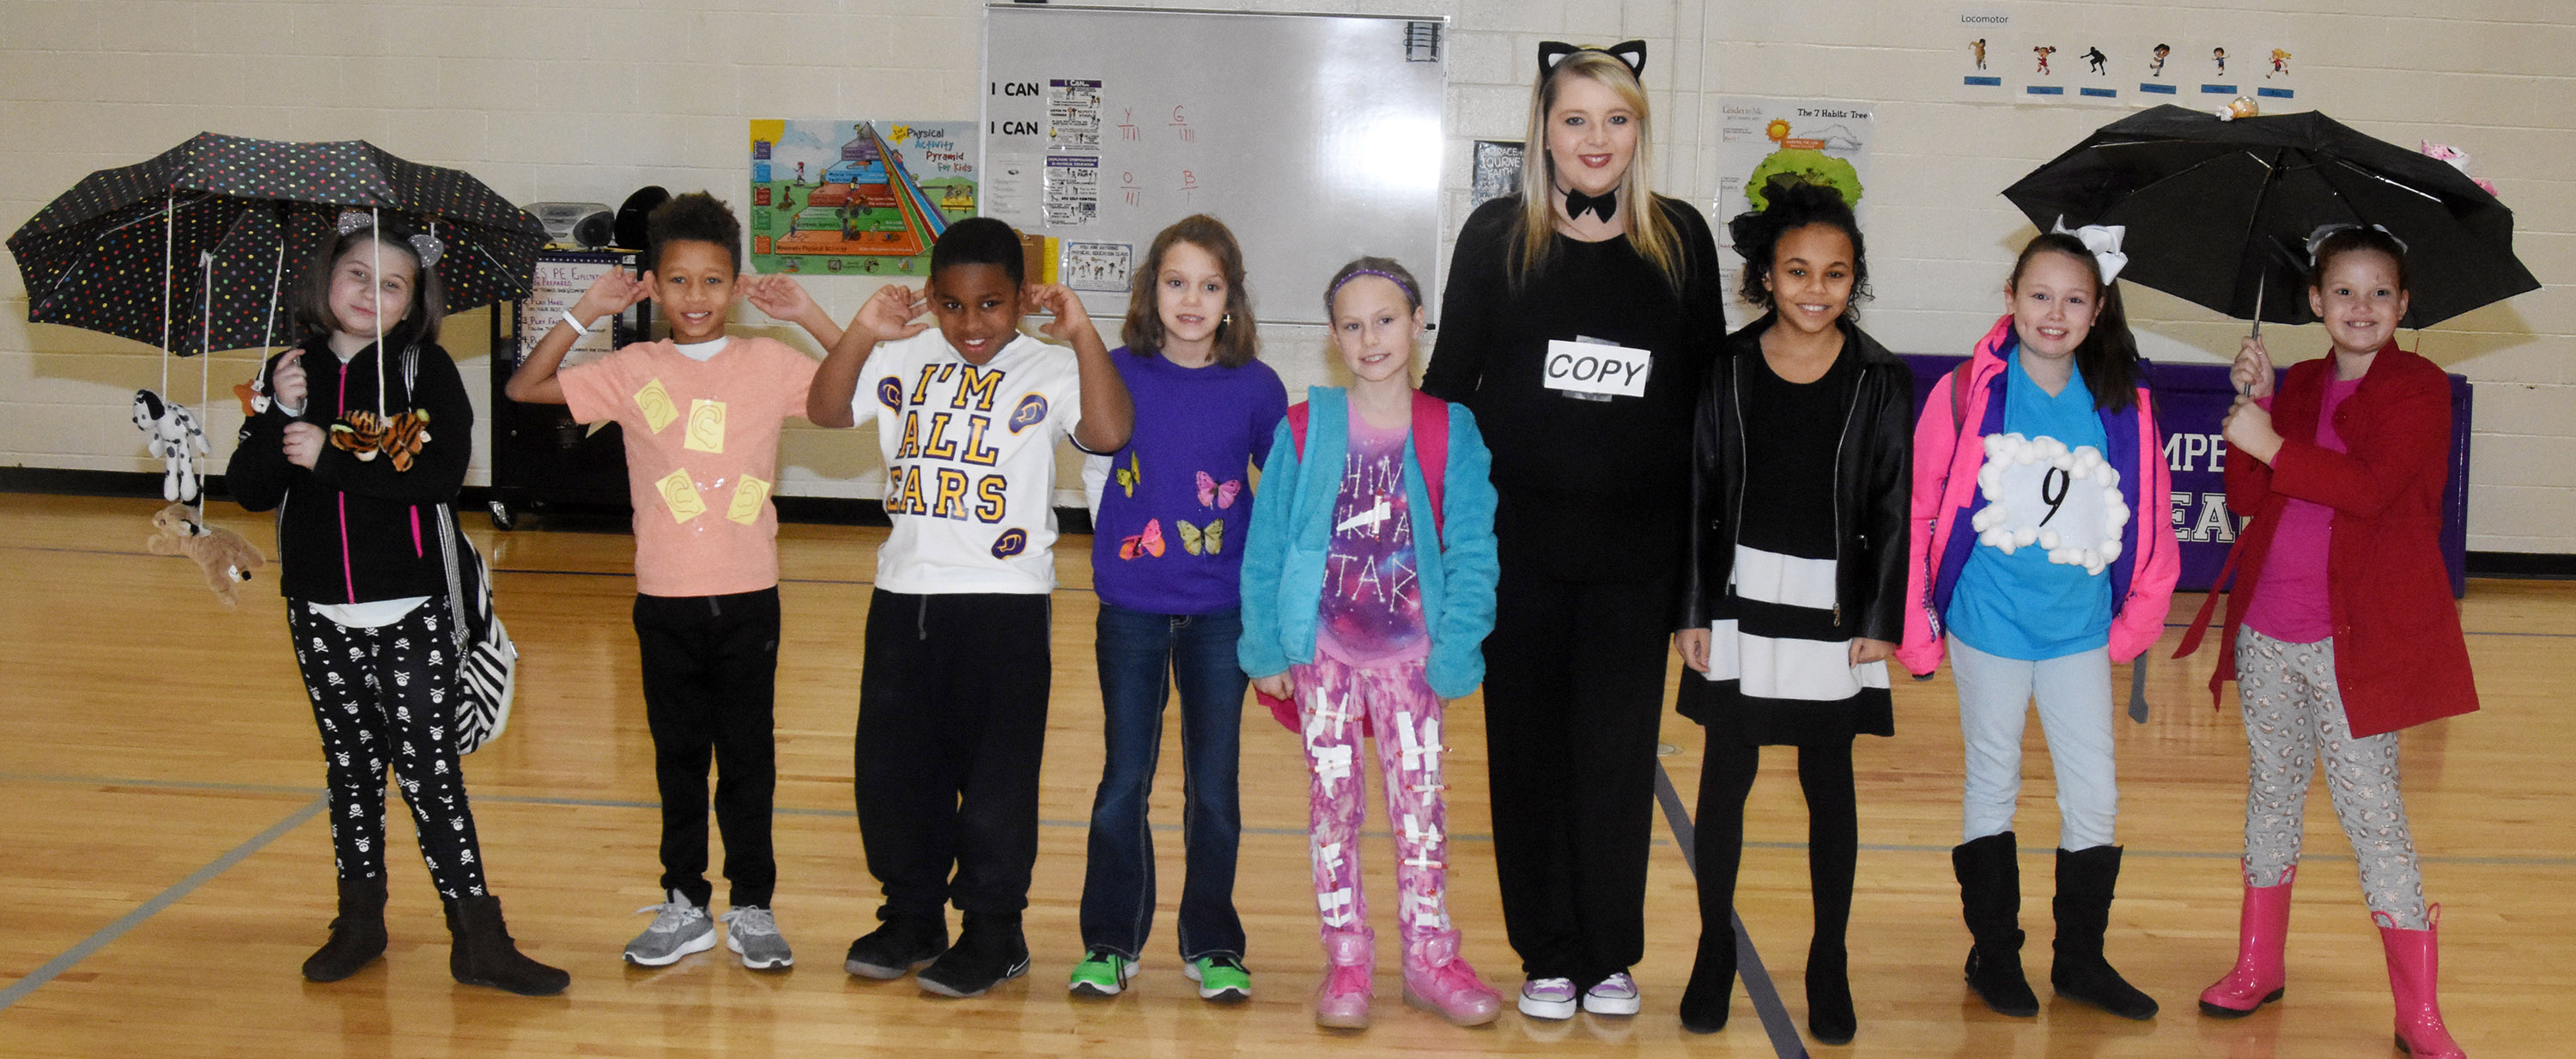 CES third-graders in Keri Richards's class dress to represent their favorite idioms. From left are Natalia West, Rajon Taylor, Elijah Spurling, Baylee Pike, Rebecca Ray, teacher Keri Richard, Braelyn Taylor, River McFarland and Analeigh Foster.